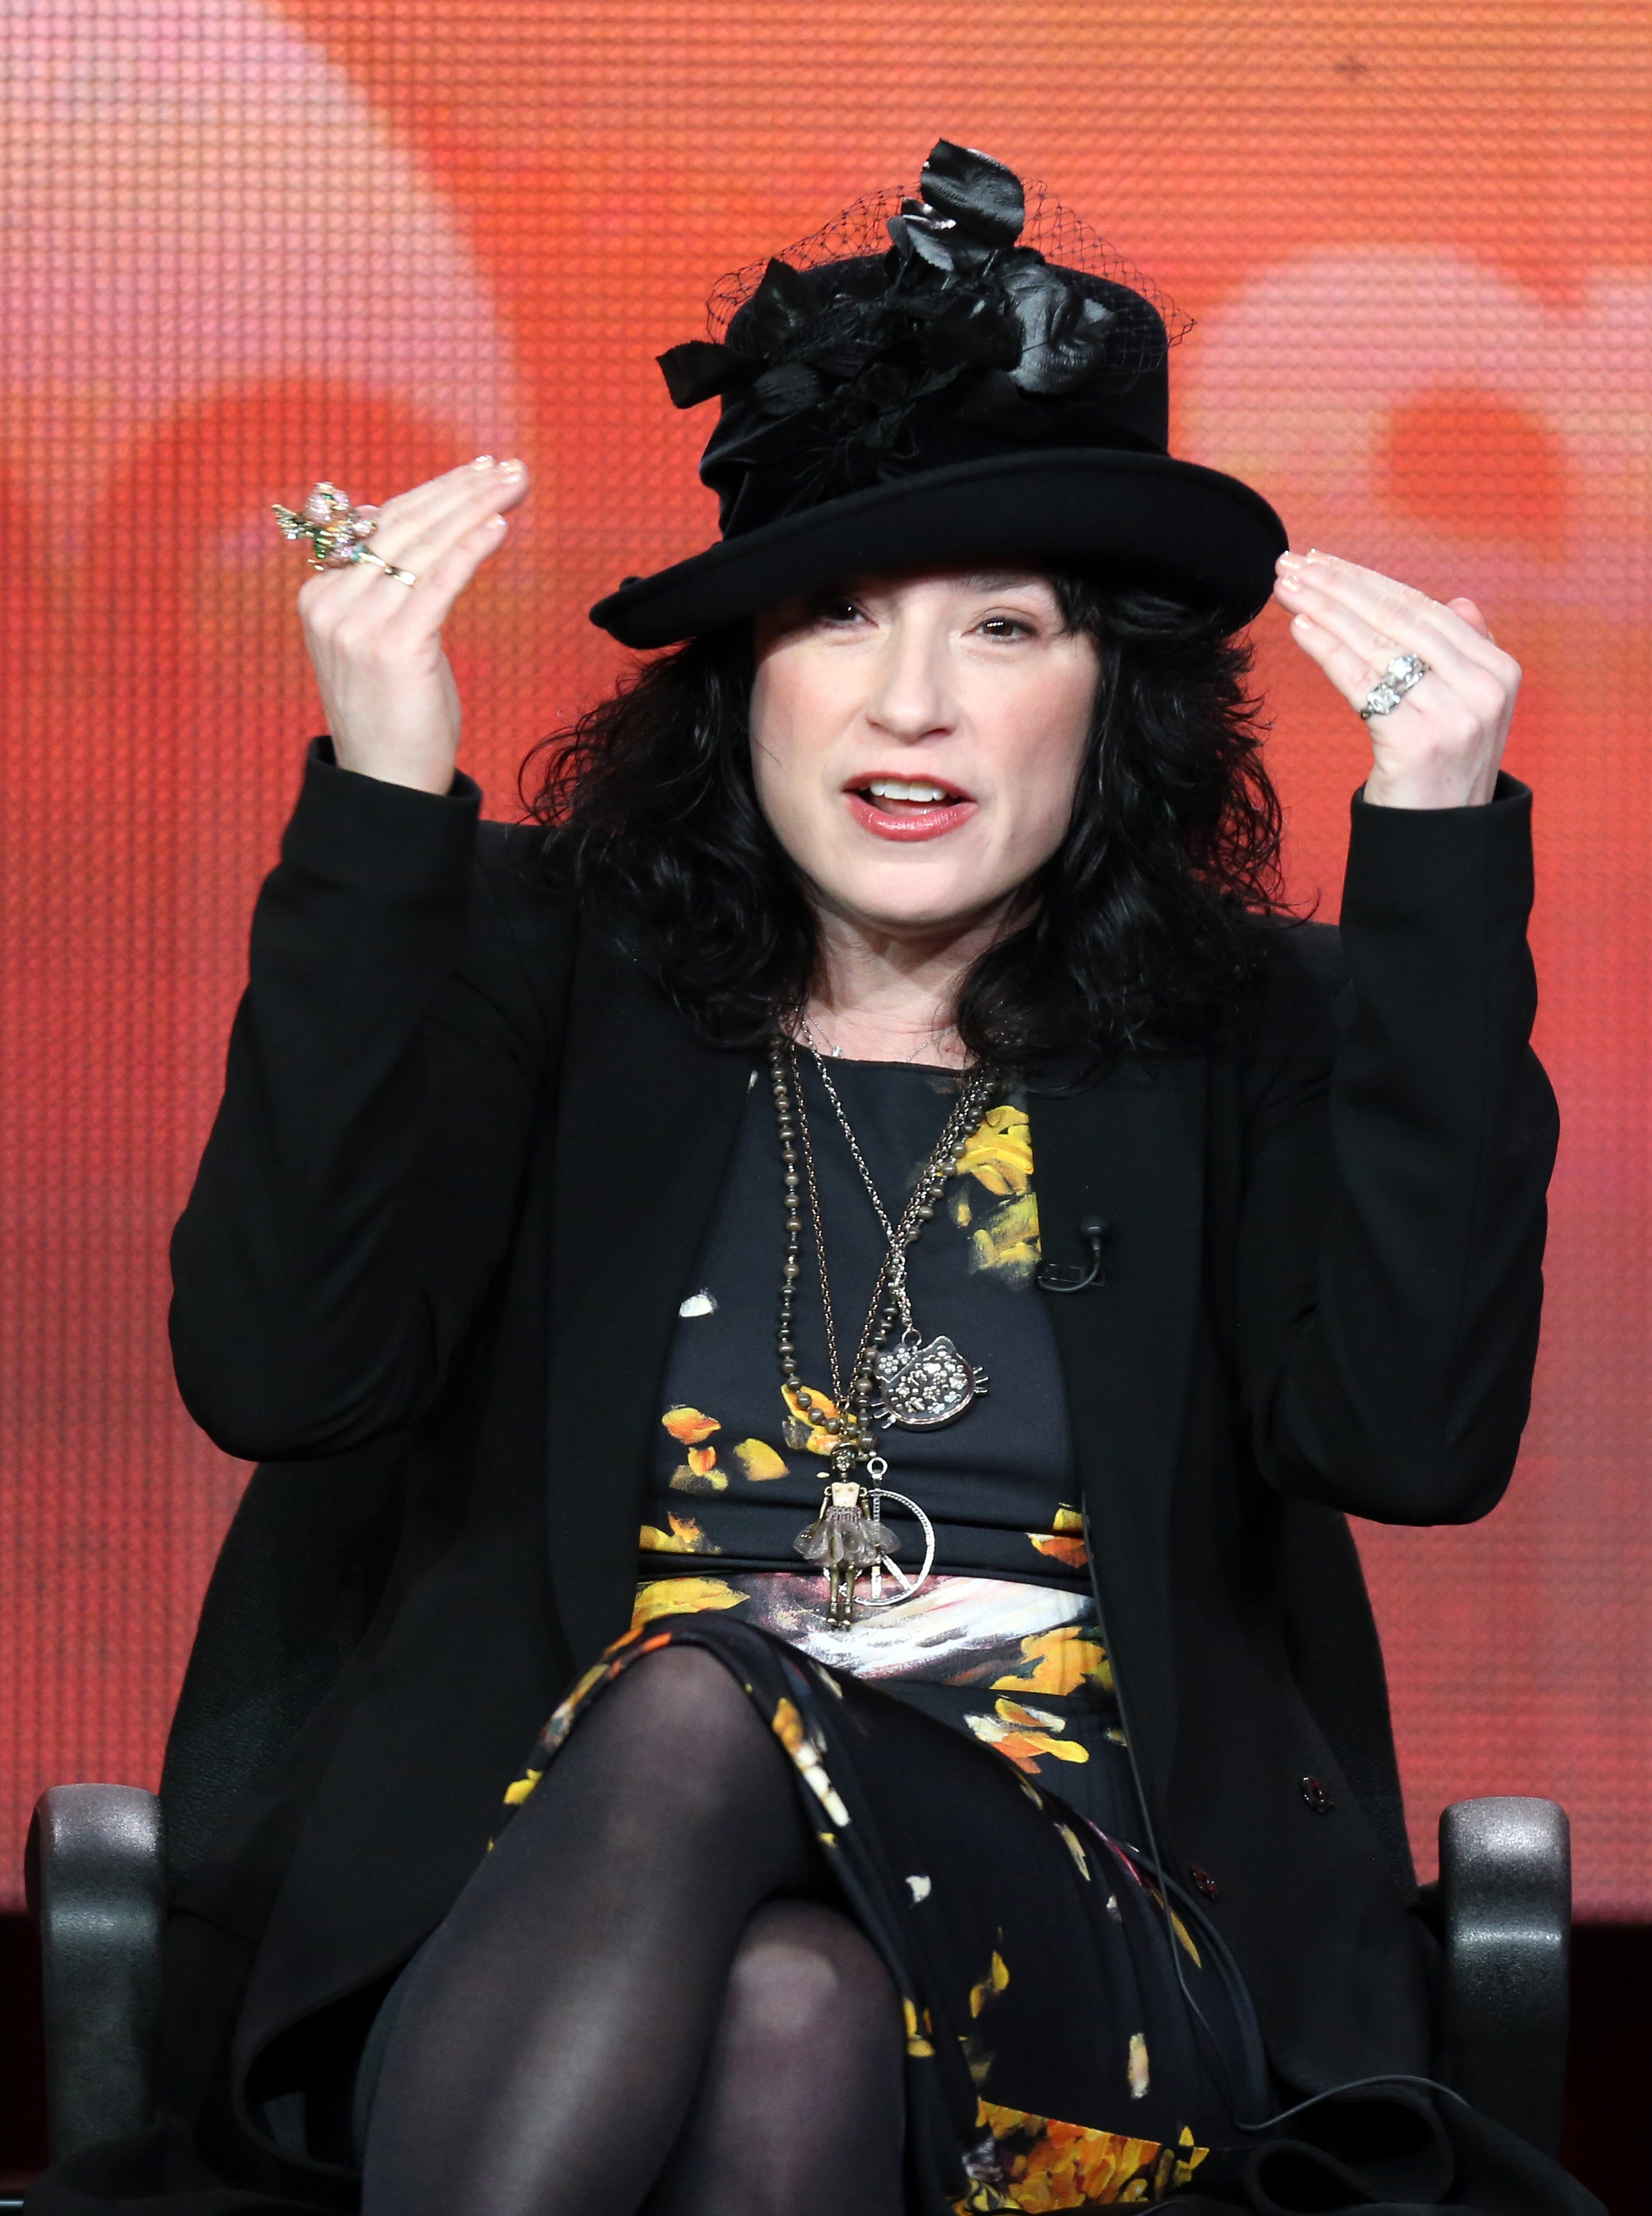 Amy Sherman-Palladino speaks onstage during the ABC portion of the 2013 Winter TCA Tour at Langham Hotel on January 10, 2013 in Pasadena, Calif.